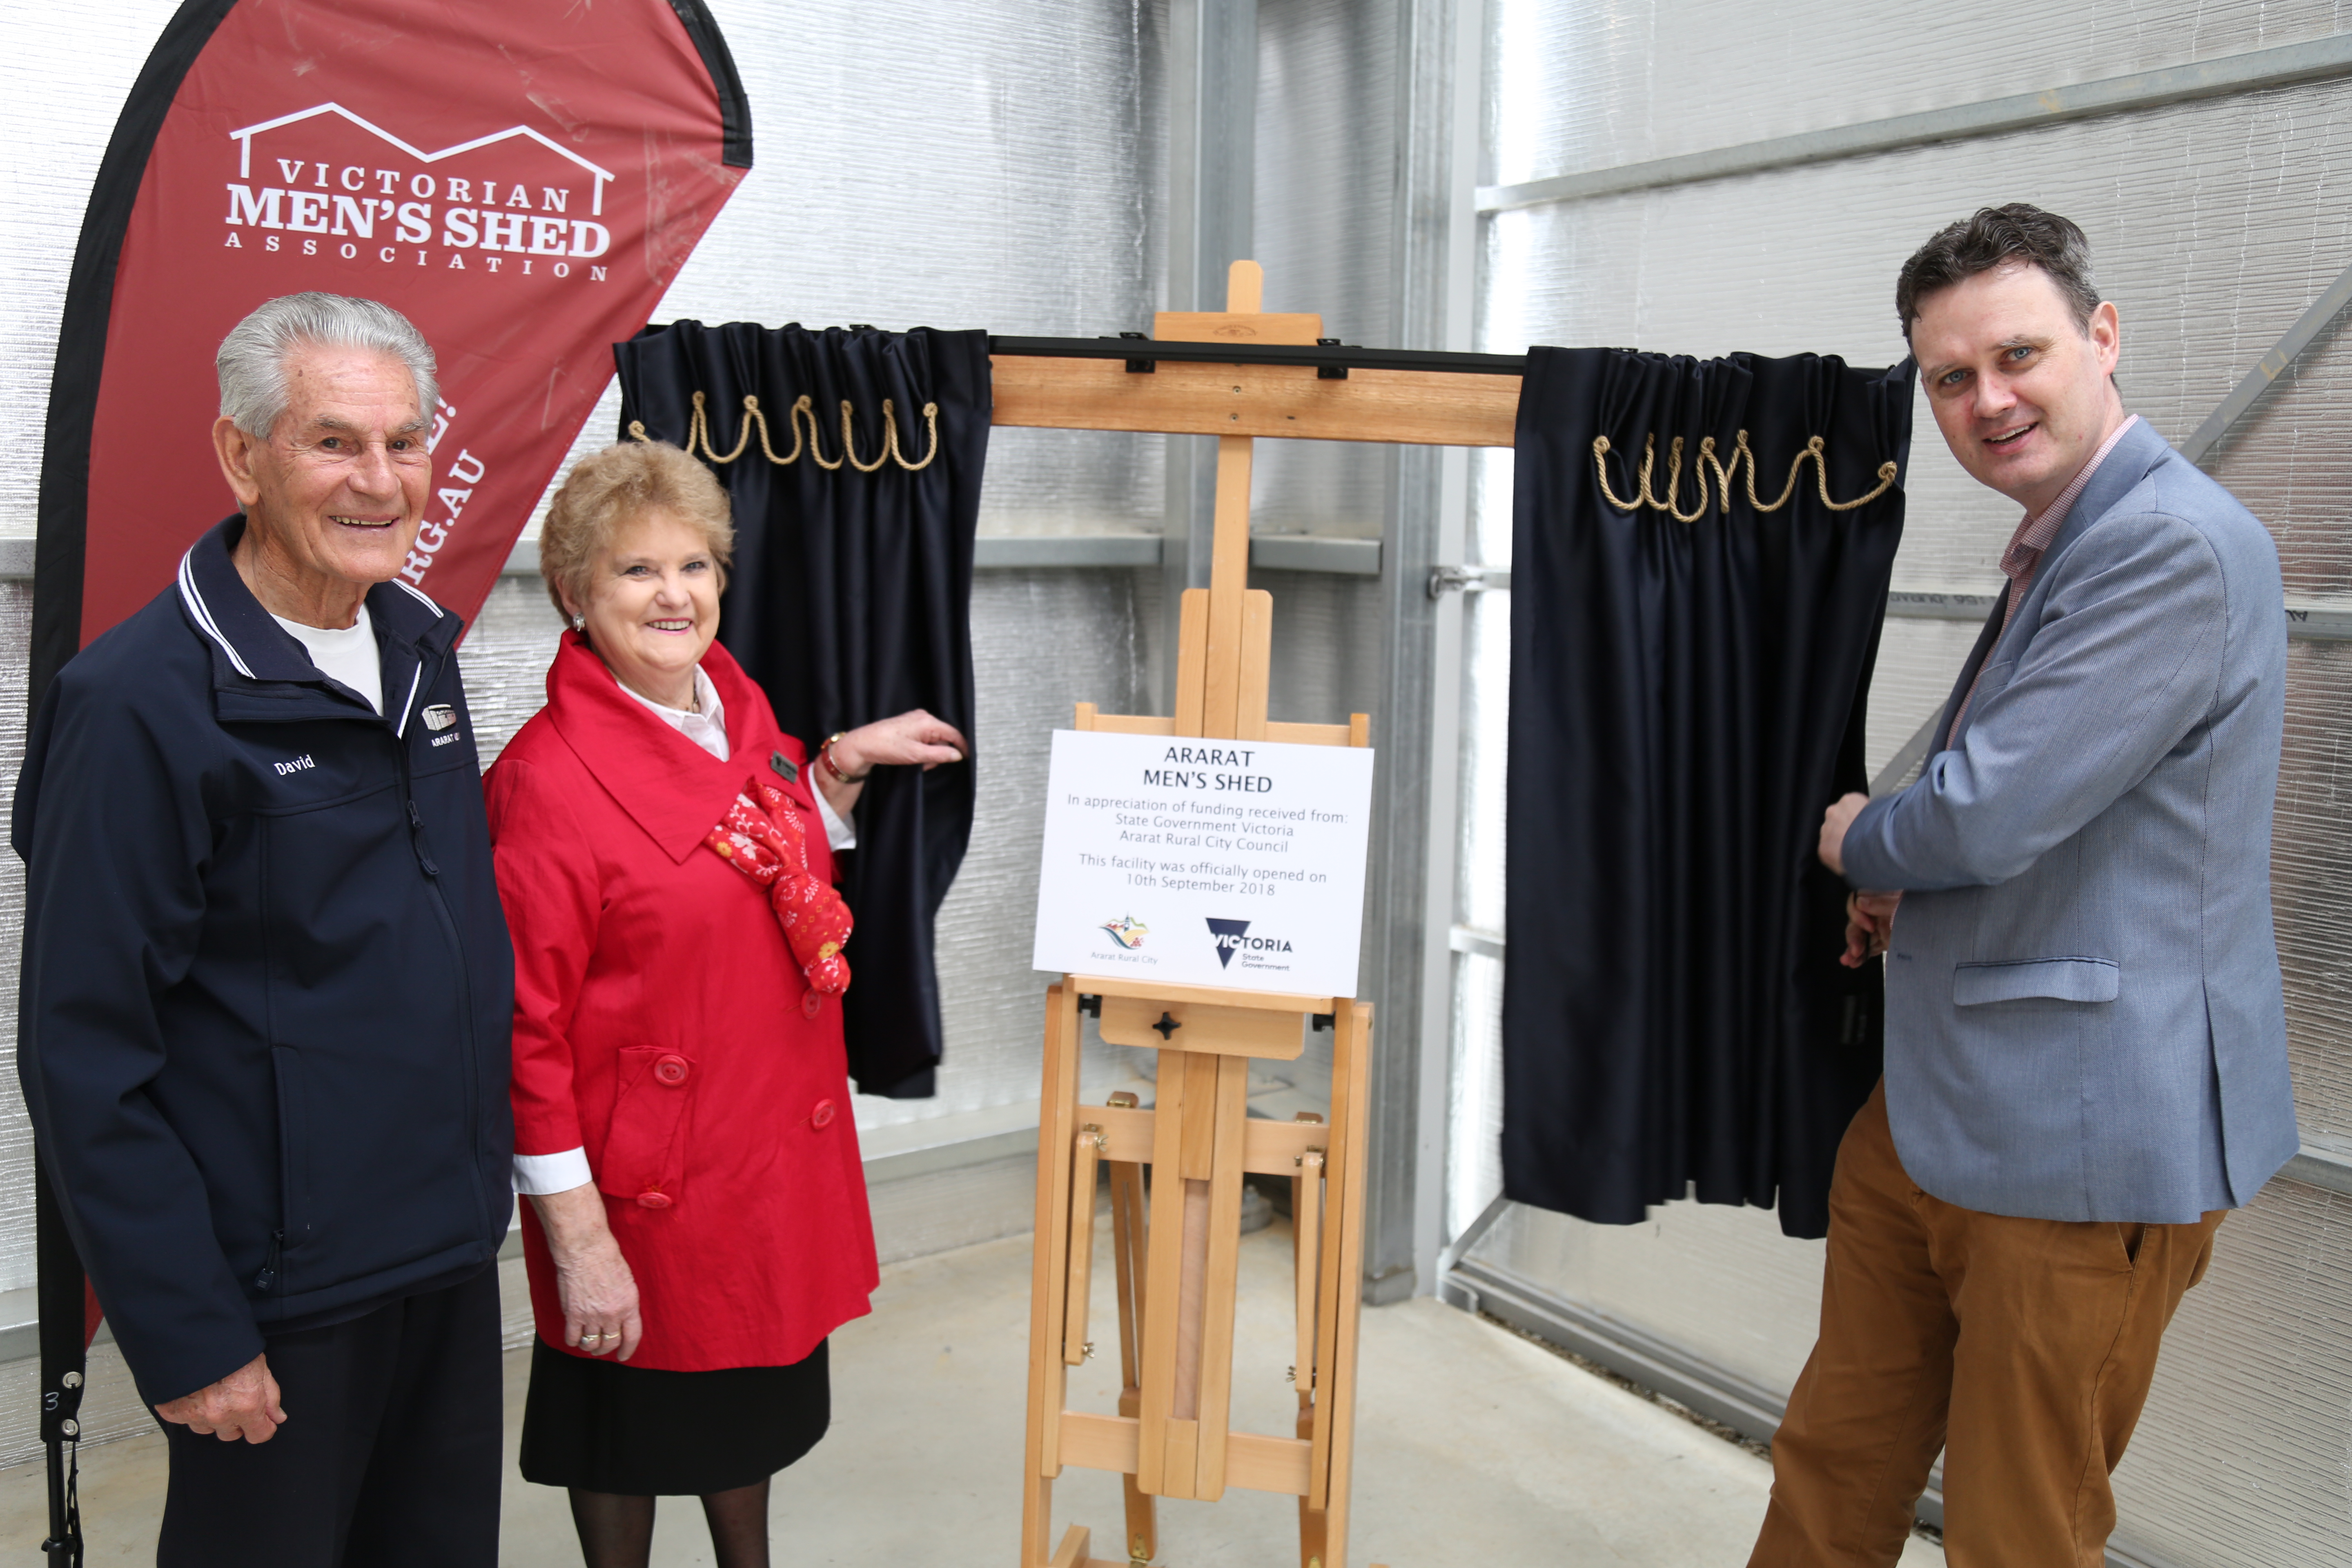 New Men's Shed Officially Opened